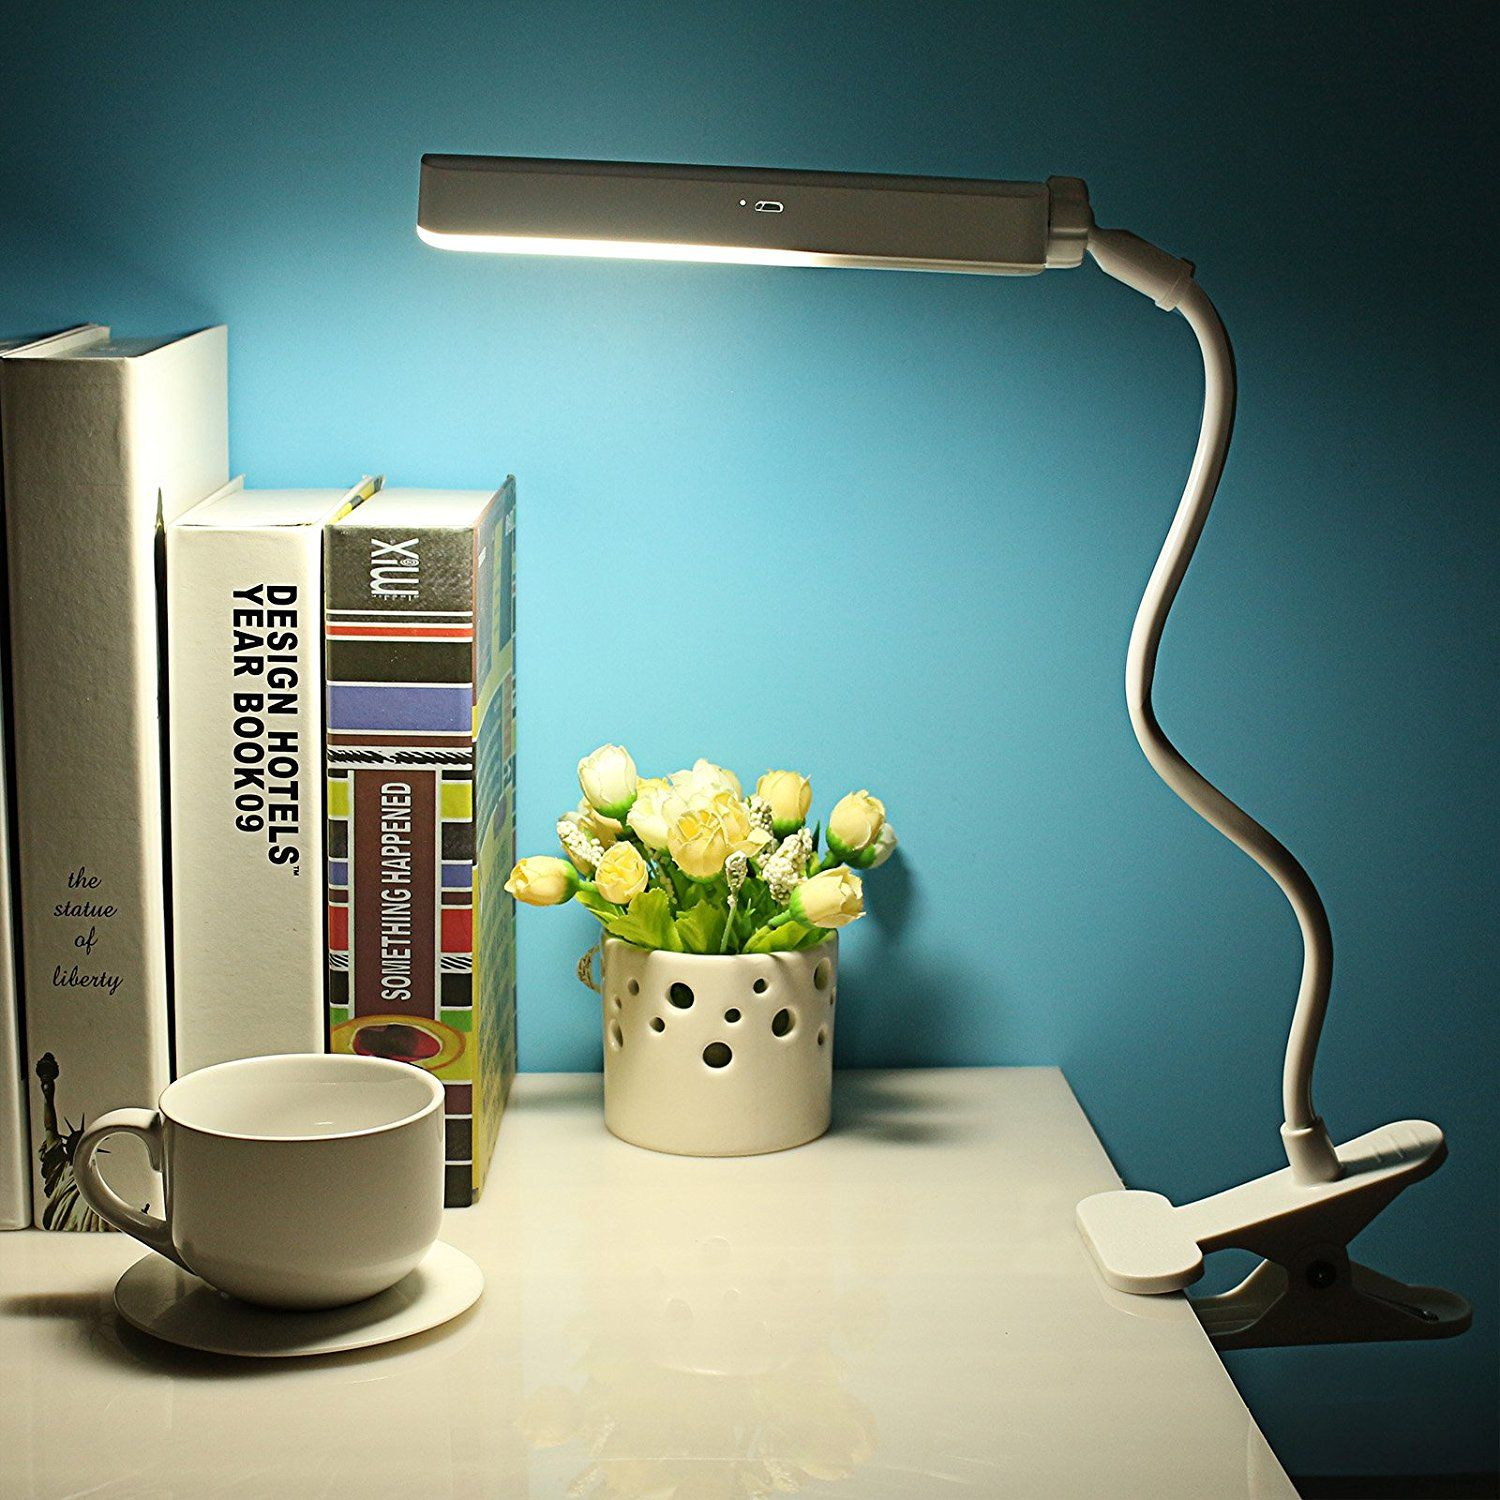 Byb Dimmable Clamp On Table Lamp Rechargeable Multipurpose Gooseneck Clip Light With Removable Design Stepless Dimming Touch Con Lamp Led Desk Lamp Desk Lamp